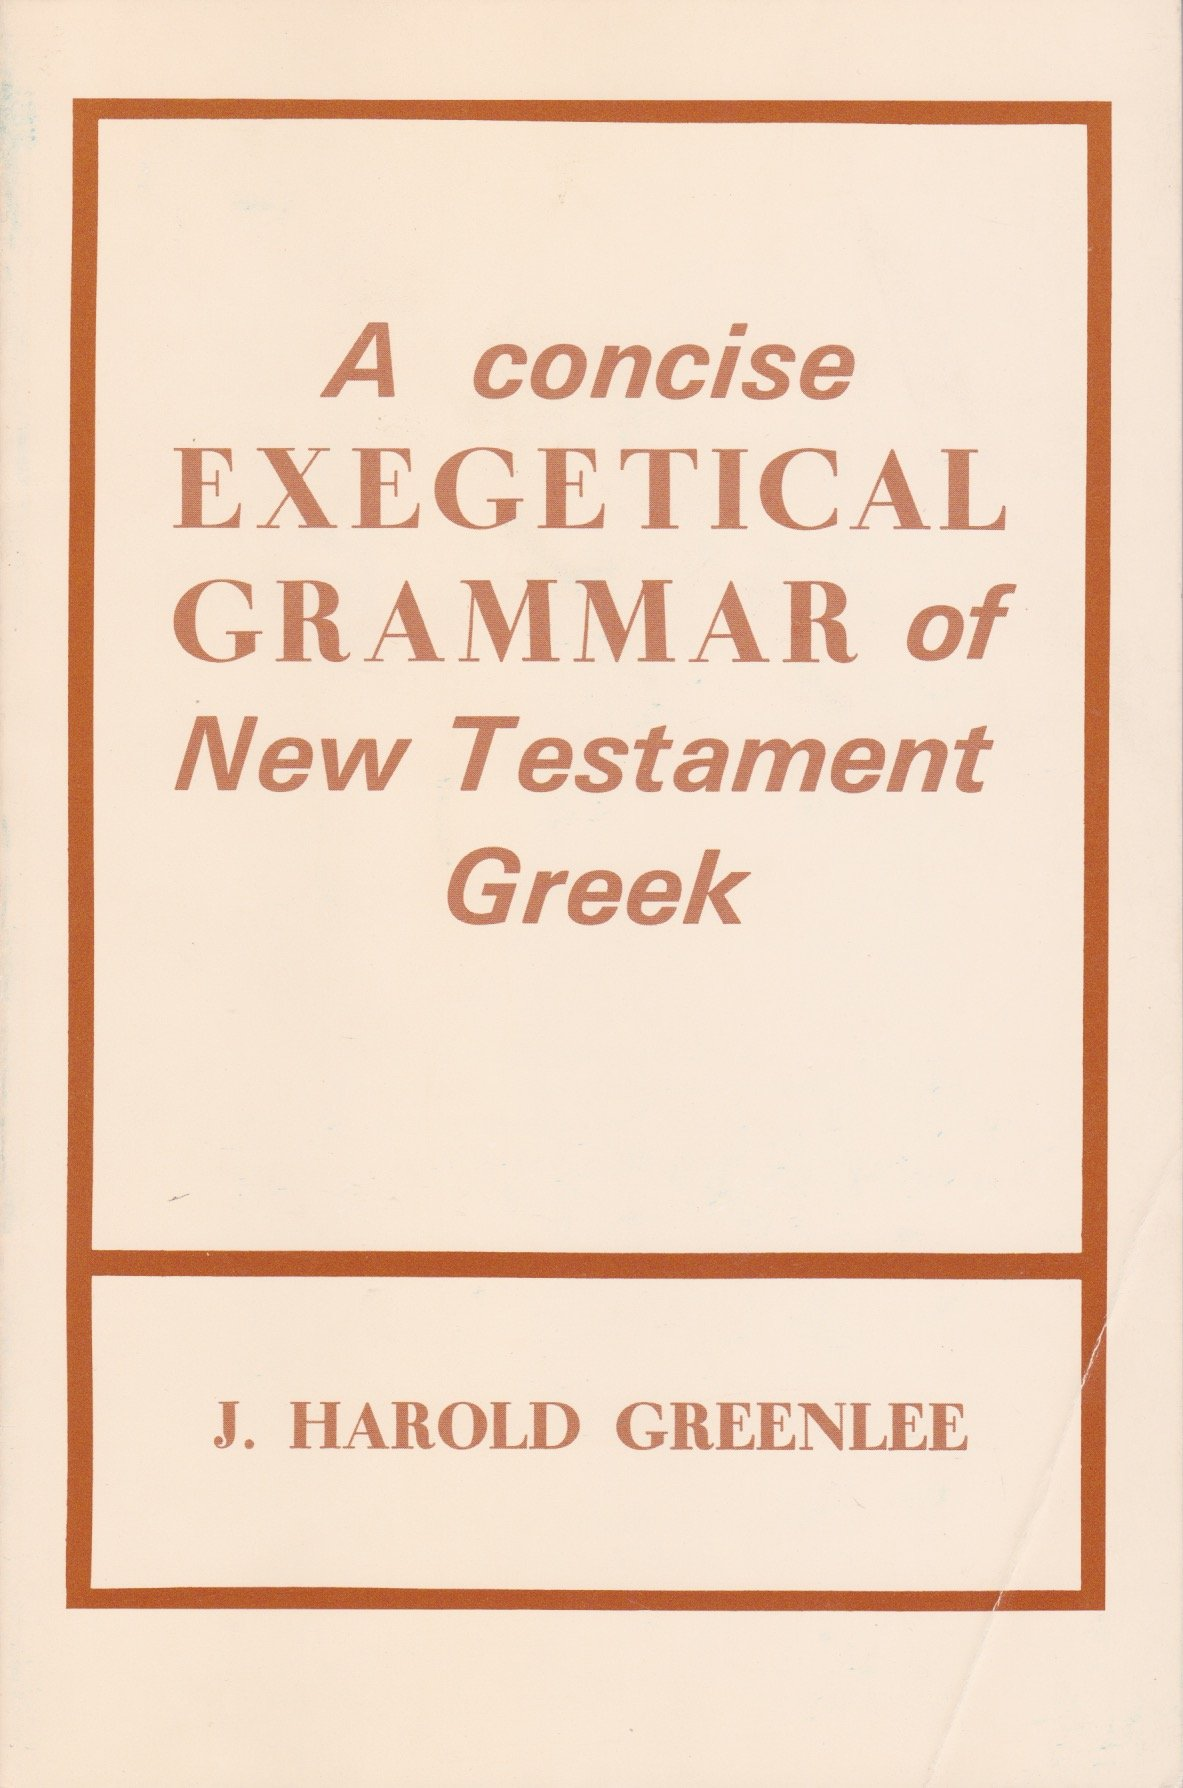 Concise Exegetical Grammar of New Testament